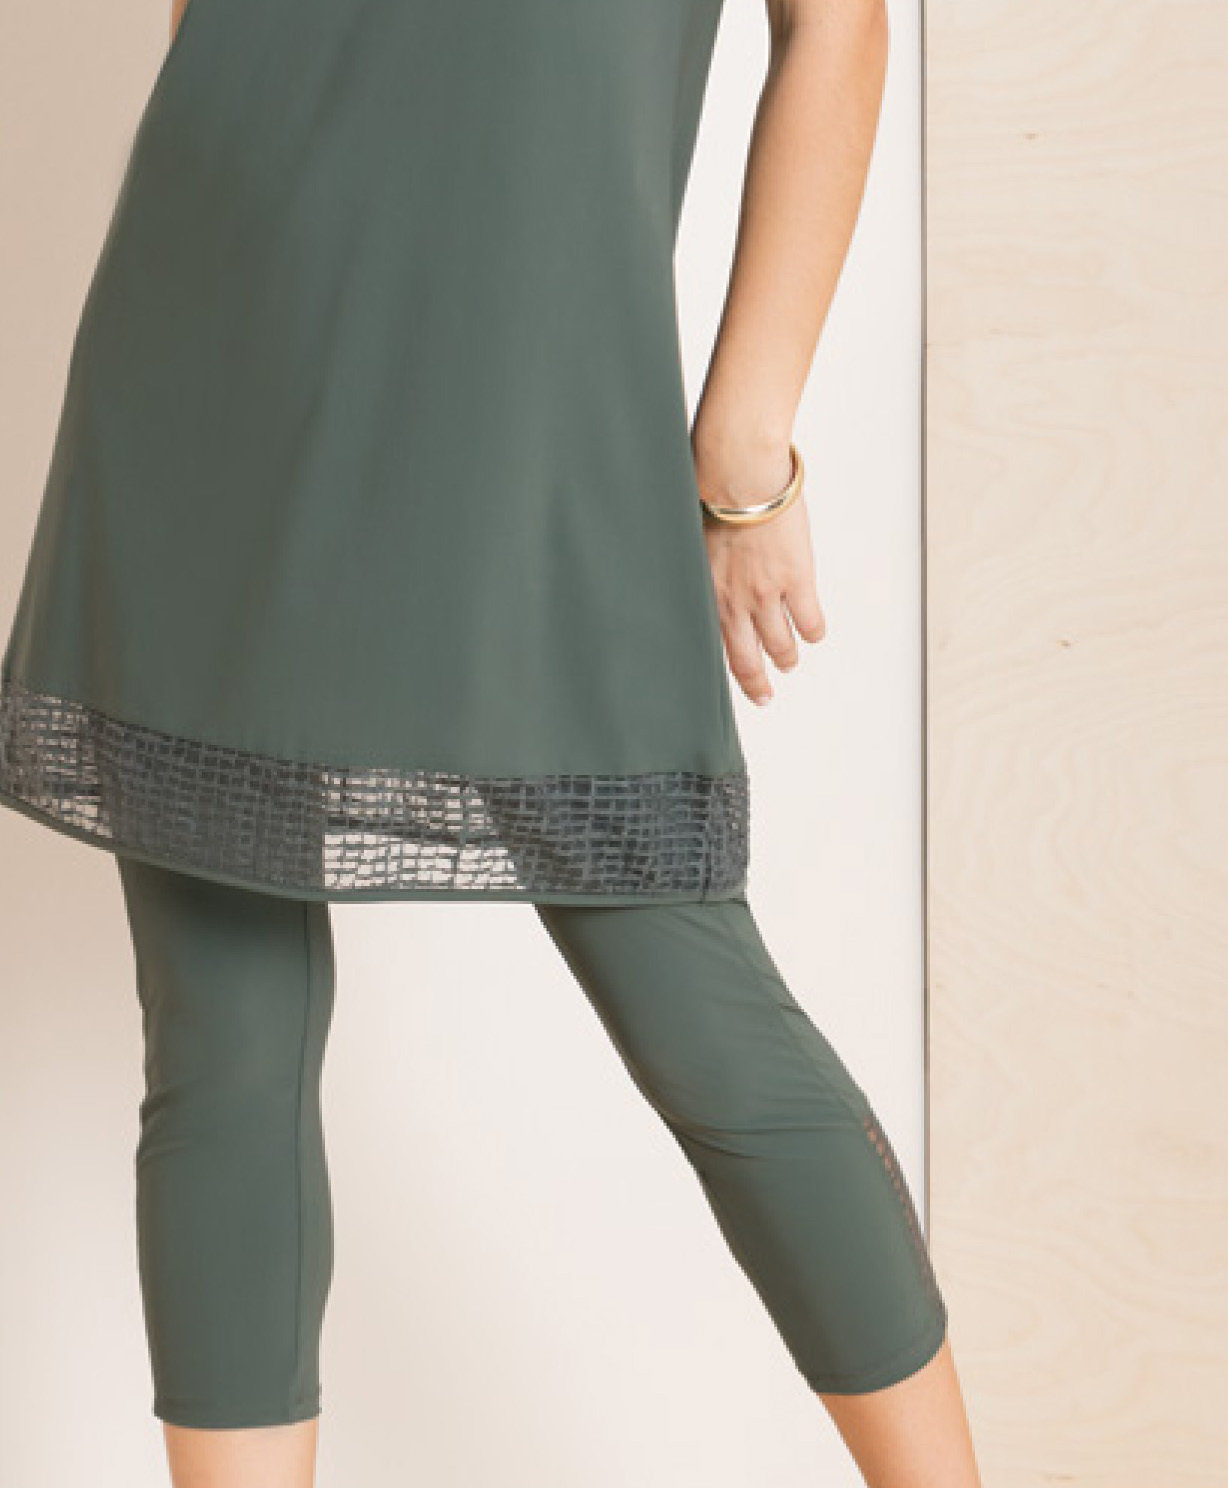 Maloka: Martini Olive Cold Shoulder Long Tunic (More Colors!)